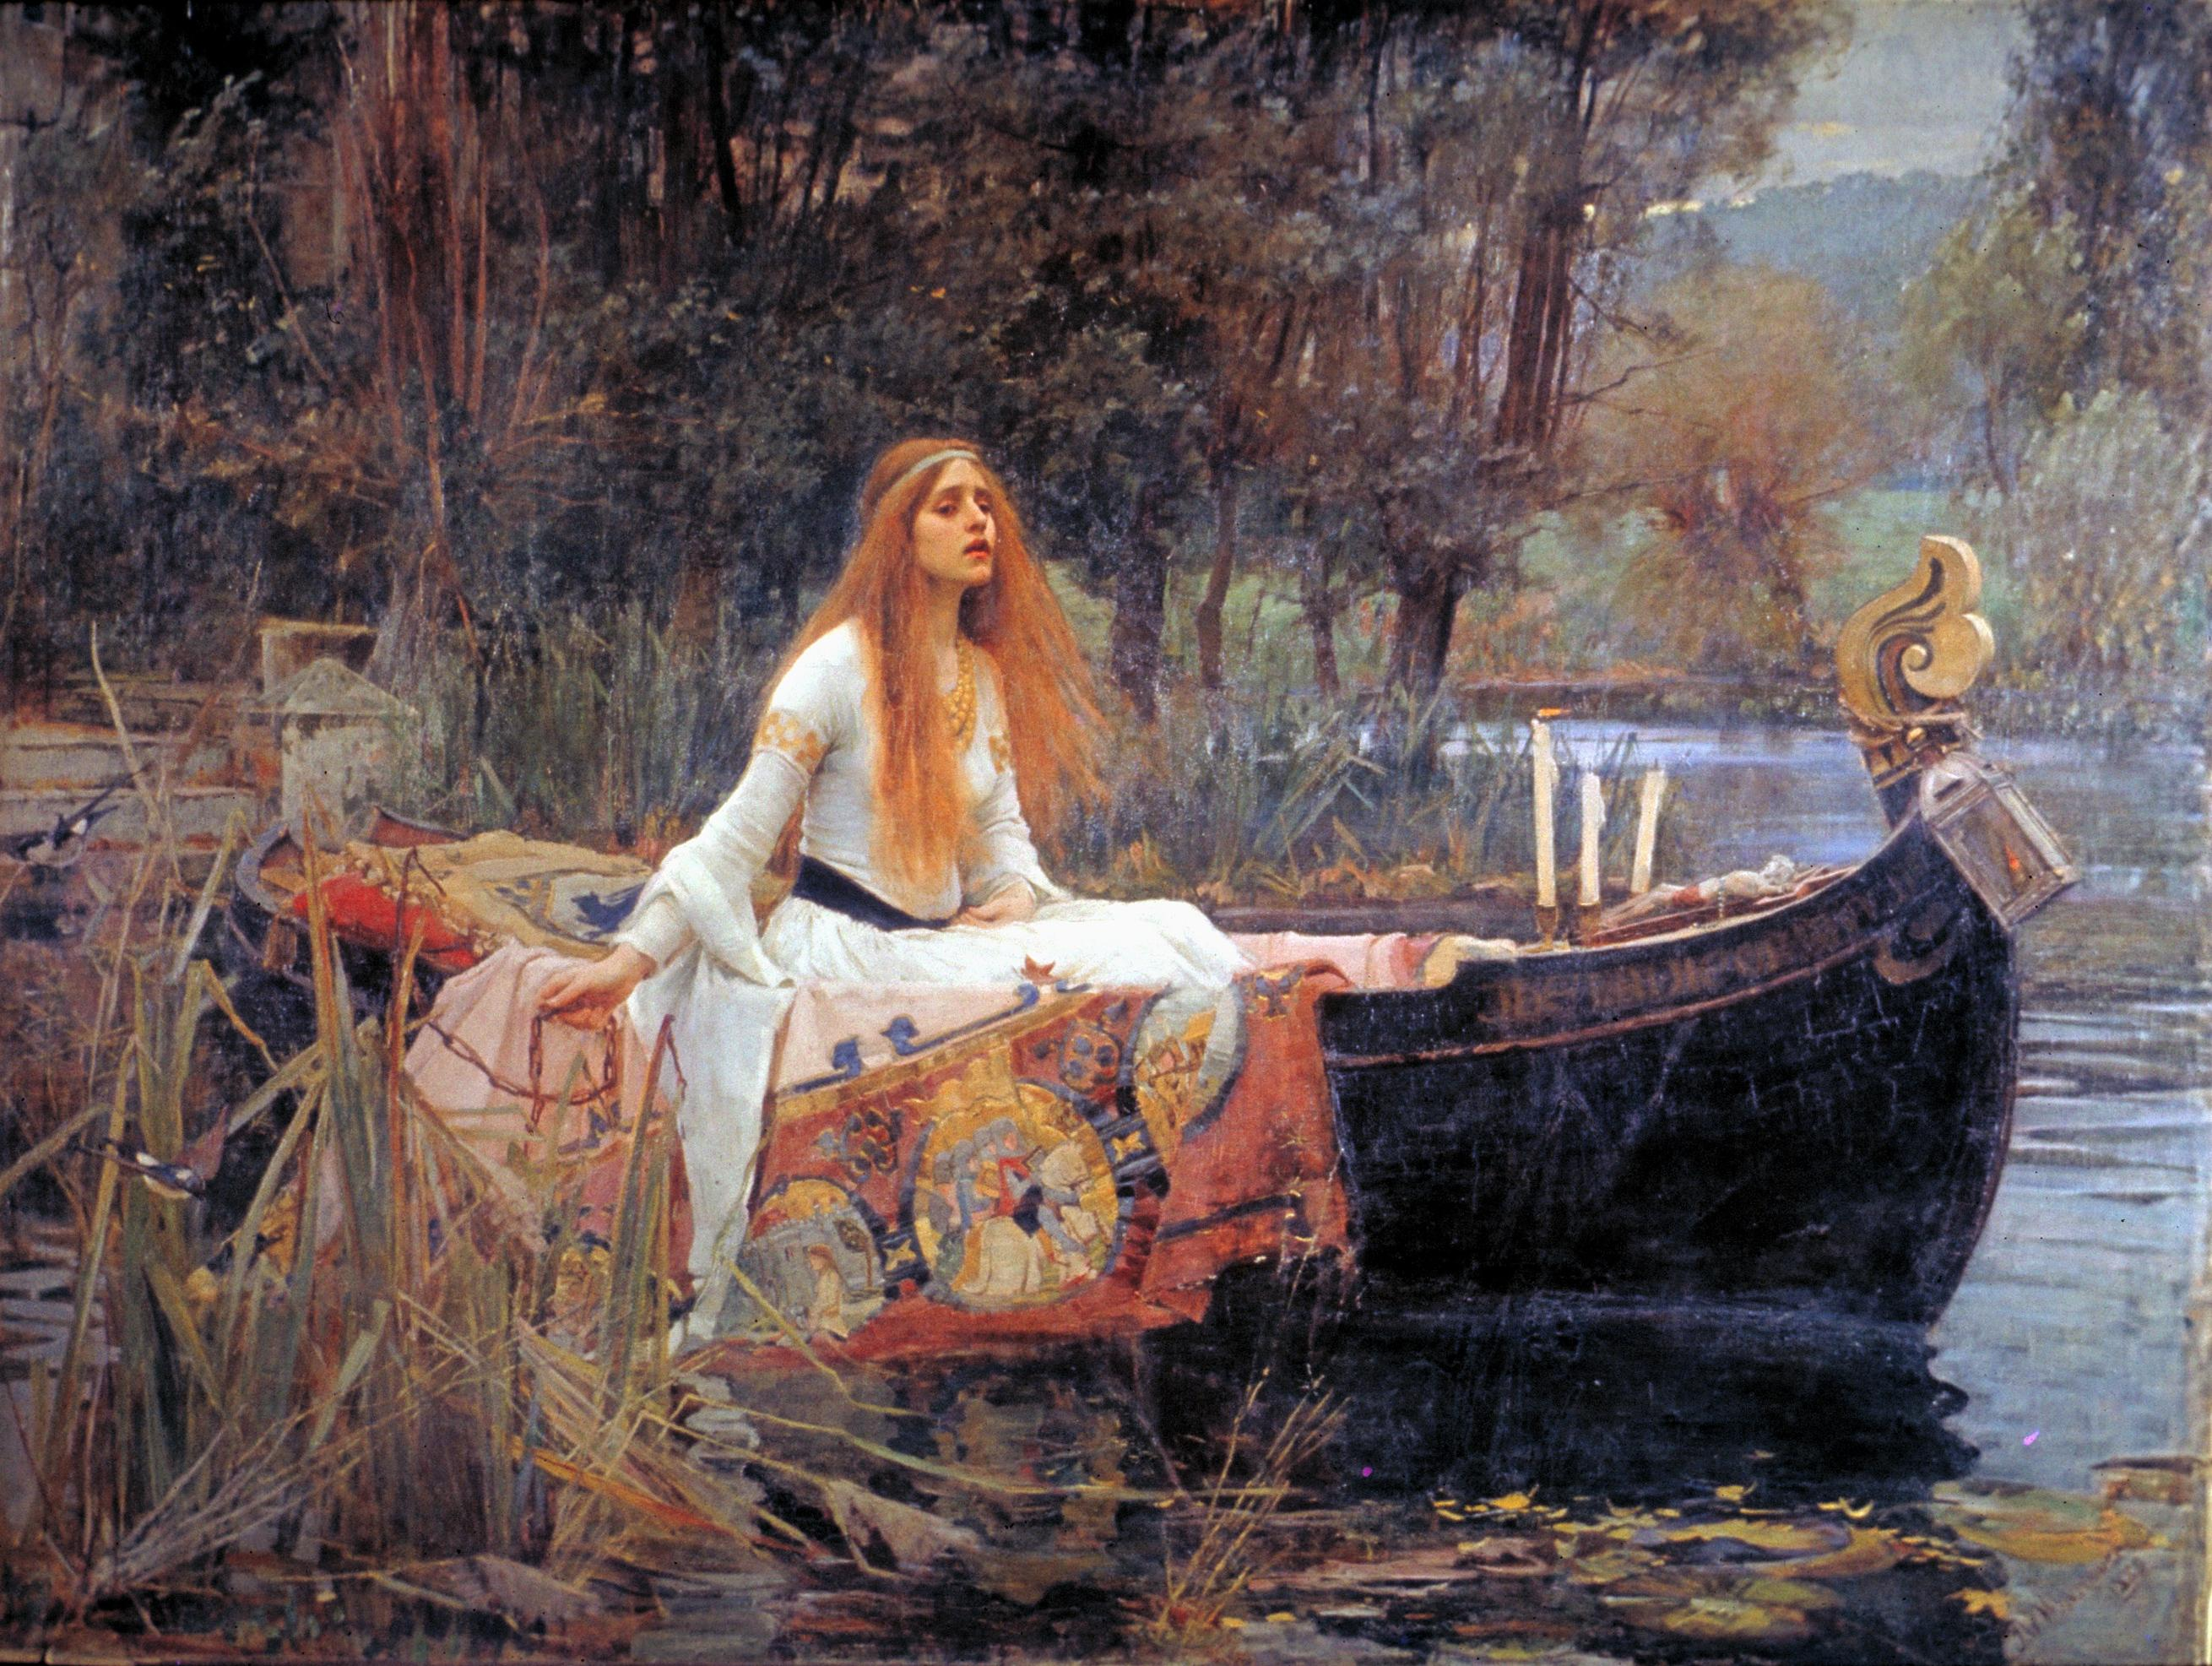 https://i2.wp.com/upload.wikimedia.org/wikipedia/commons/7/70/John_William_Waterhouse_The_Lady_of_Shalott.jpg